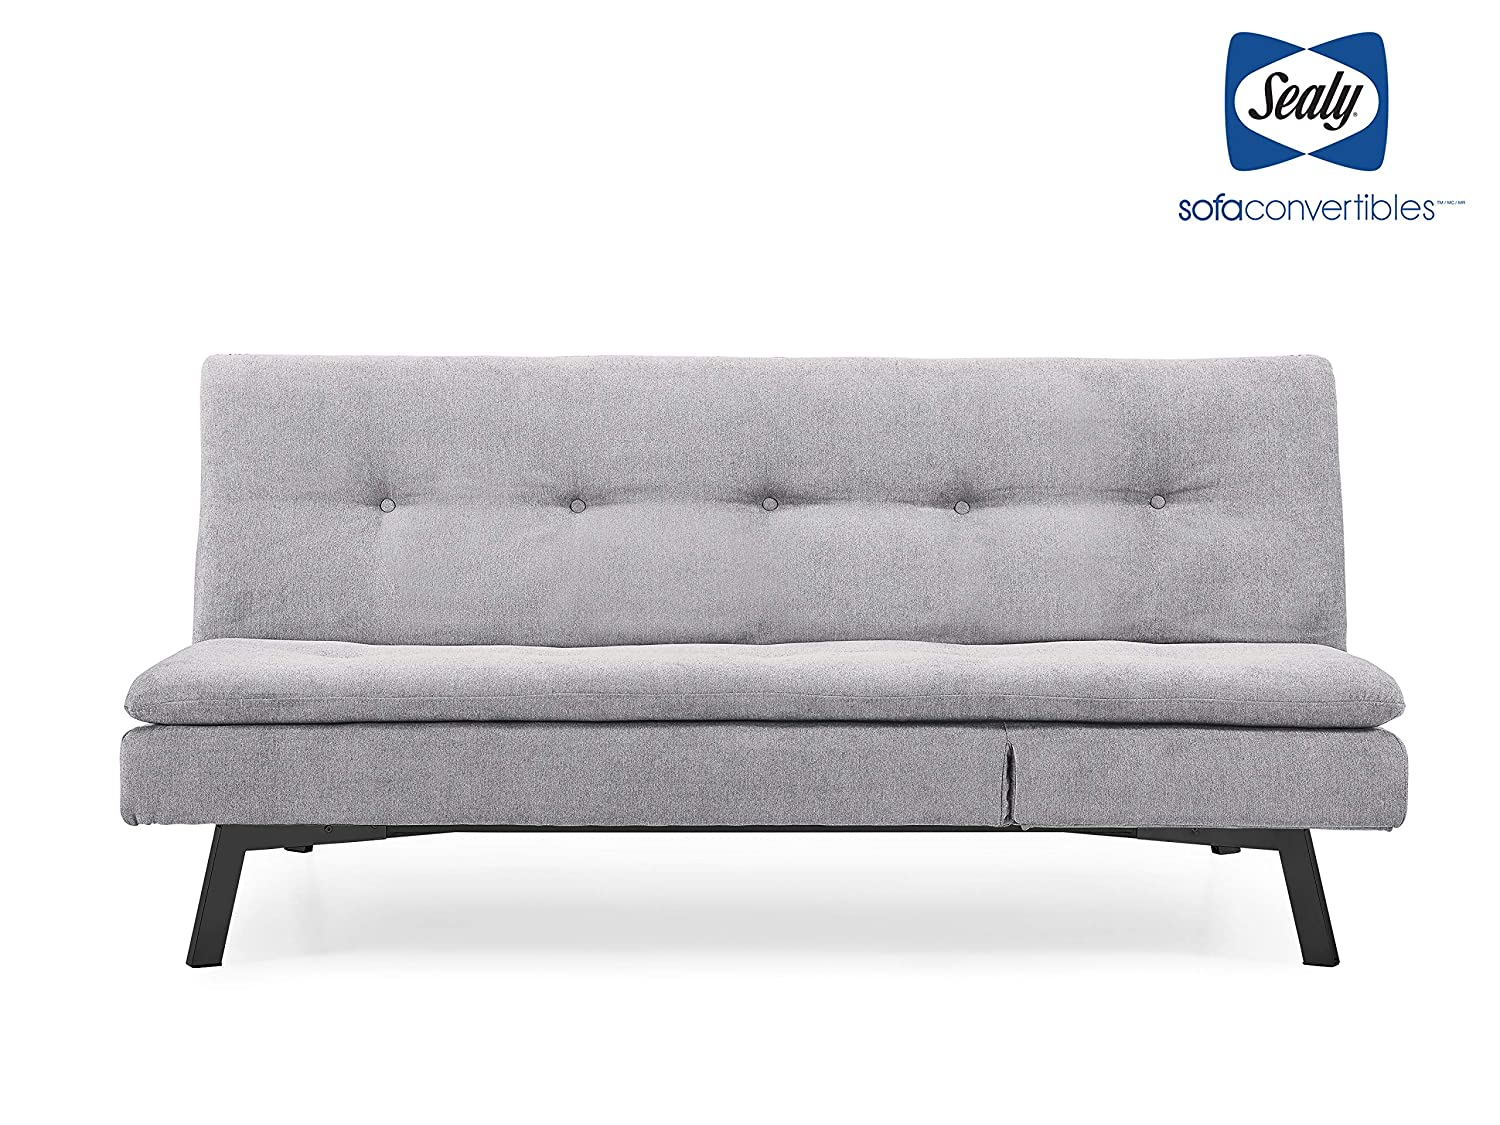 Superb Sealy Savannah Transitional Convertible Chaise Sofa In Gray Evergreenethics Interior Chair Design Evergreenethicsorg